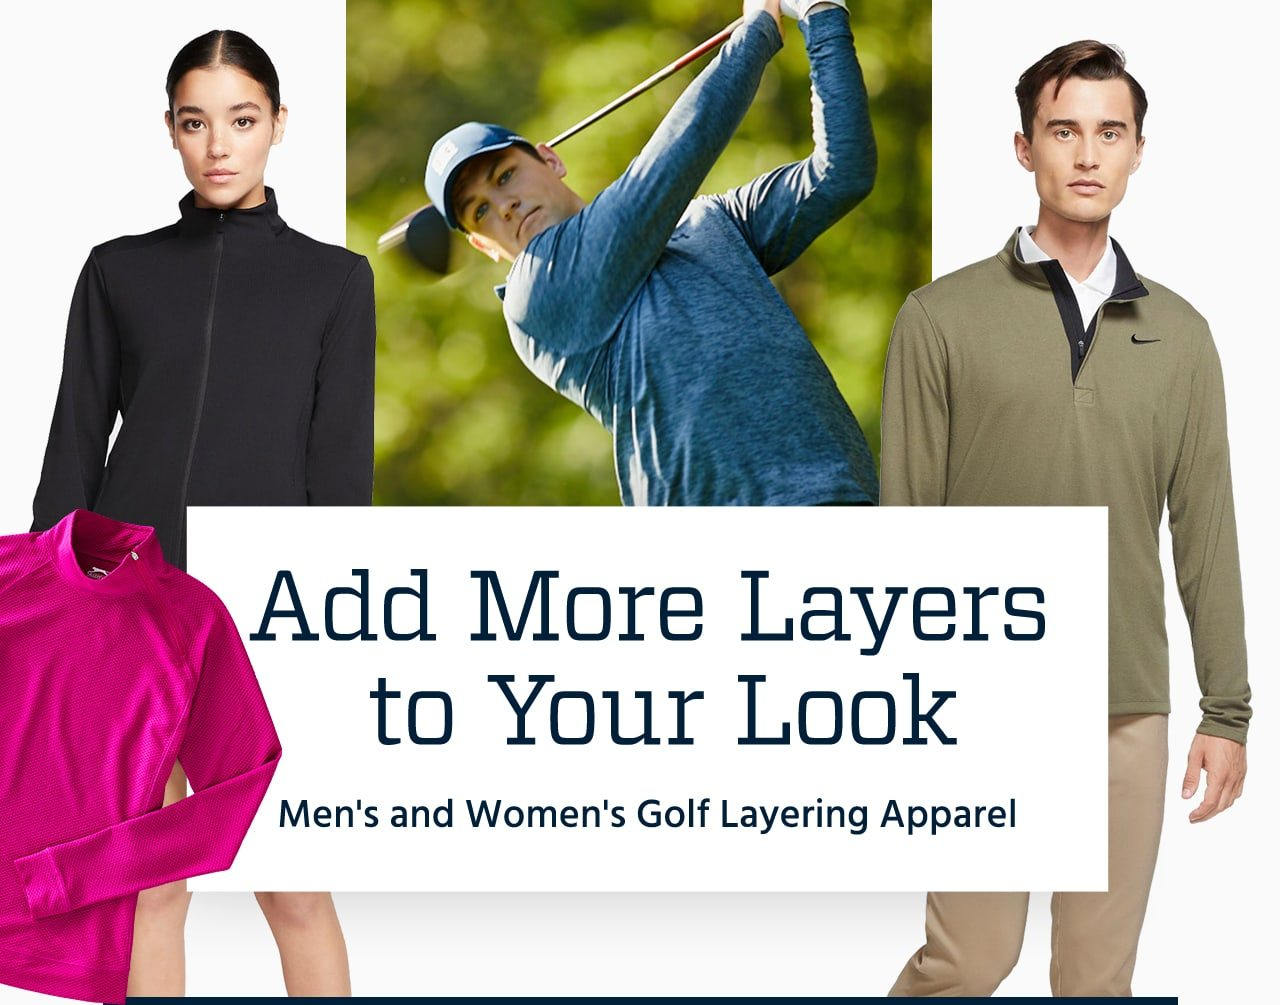 Add more layers to your look. Men's and women's golf layering apparel.